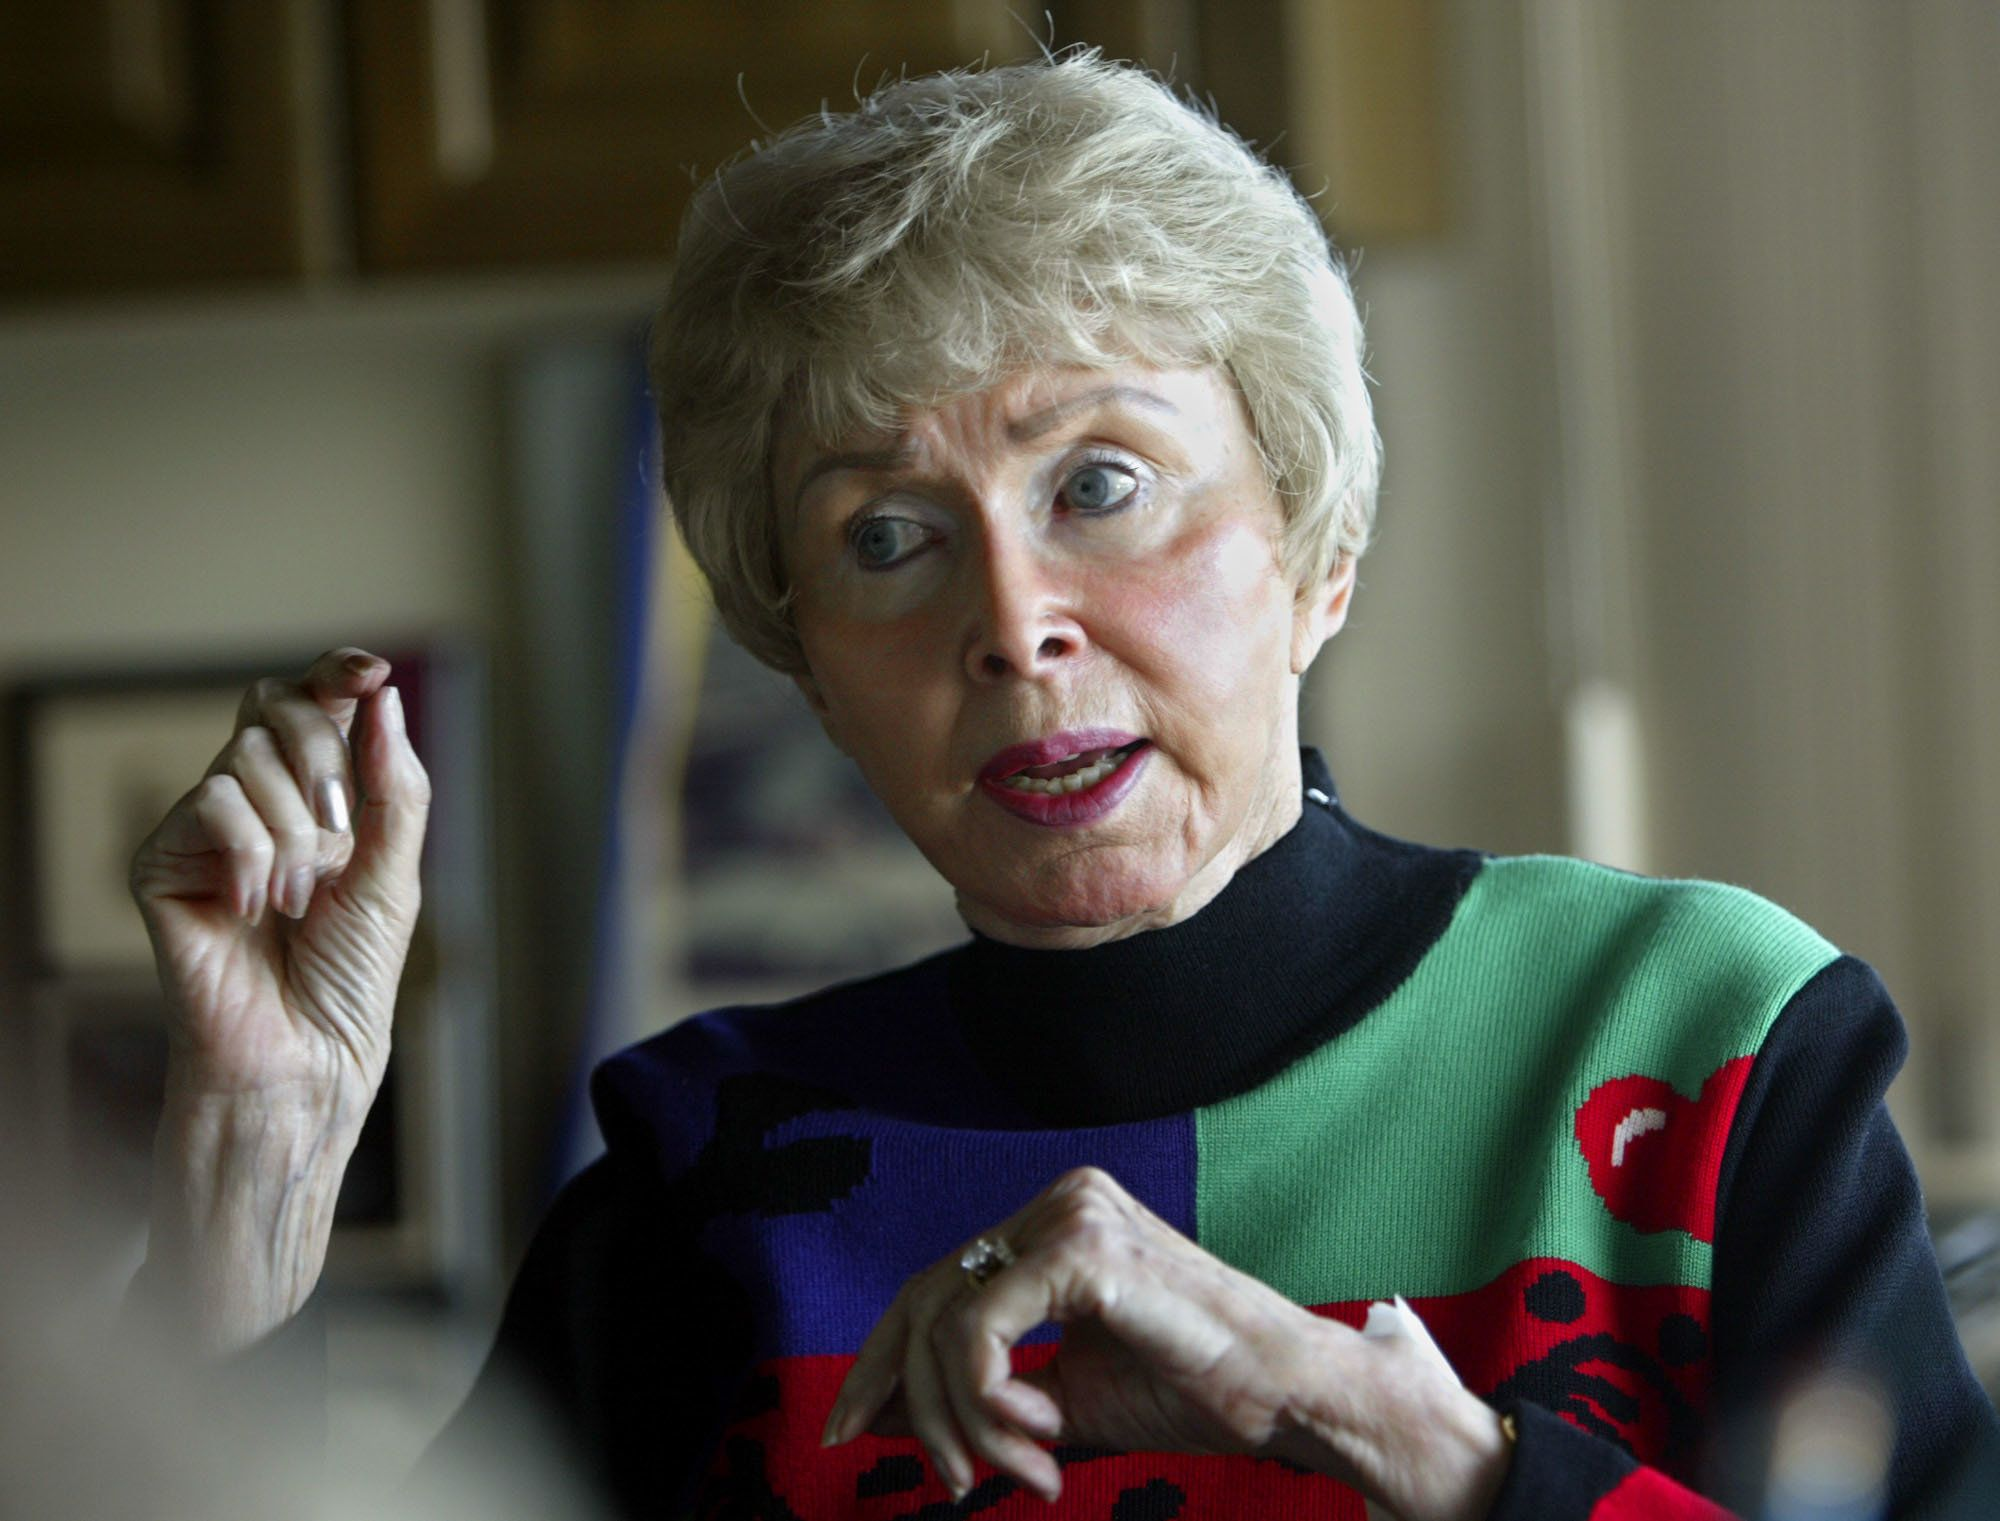 Audrey Geisel, widow of Dr. Seuss creator Theodor Geisel, talks about Dr. Seuss Enterprises at her home in La Jolla area of San Diego Feb. 4, 2004. The 82-year-old heiress has parlayed the popular Seuss characters into a multi-million dollar industry, as the 100th anniversary of her husband's birth approaches.   (AP PHoto/Lenny Ignelzi)